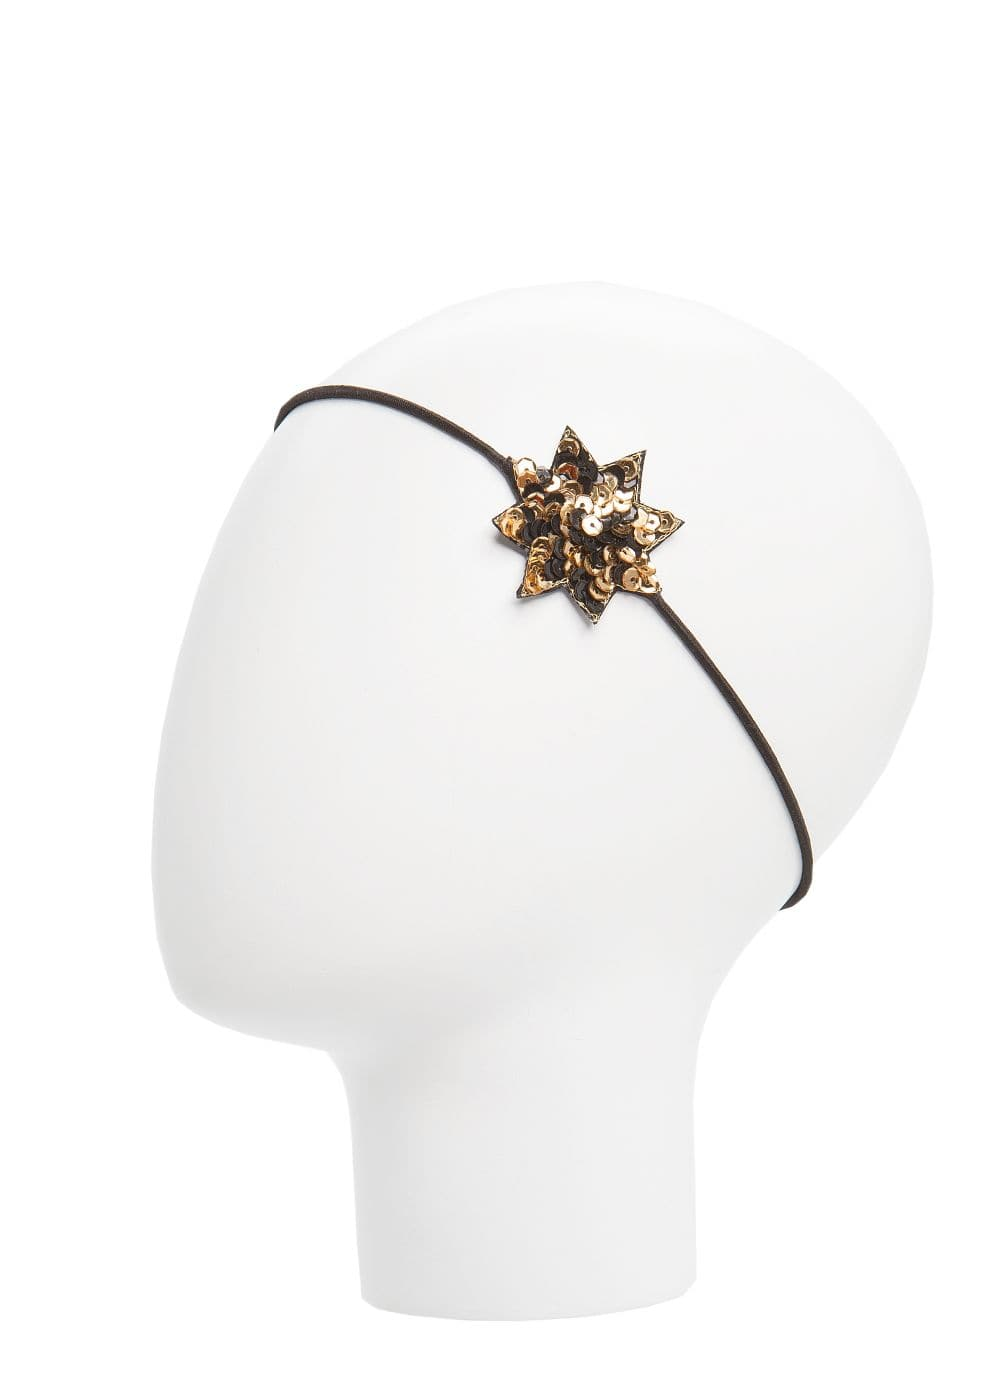 Sequined star hairband